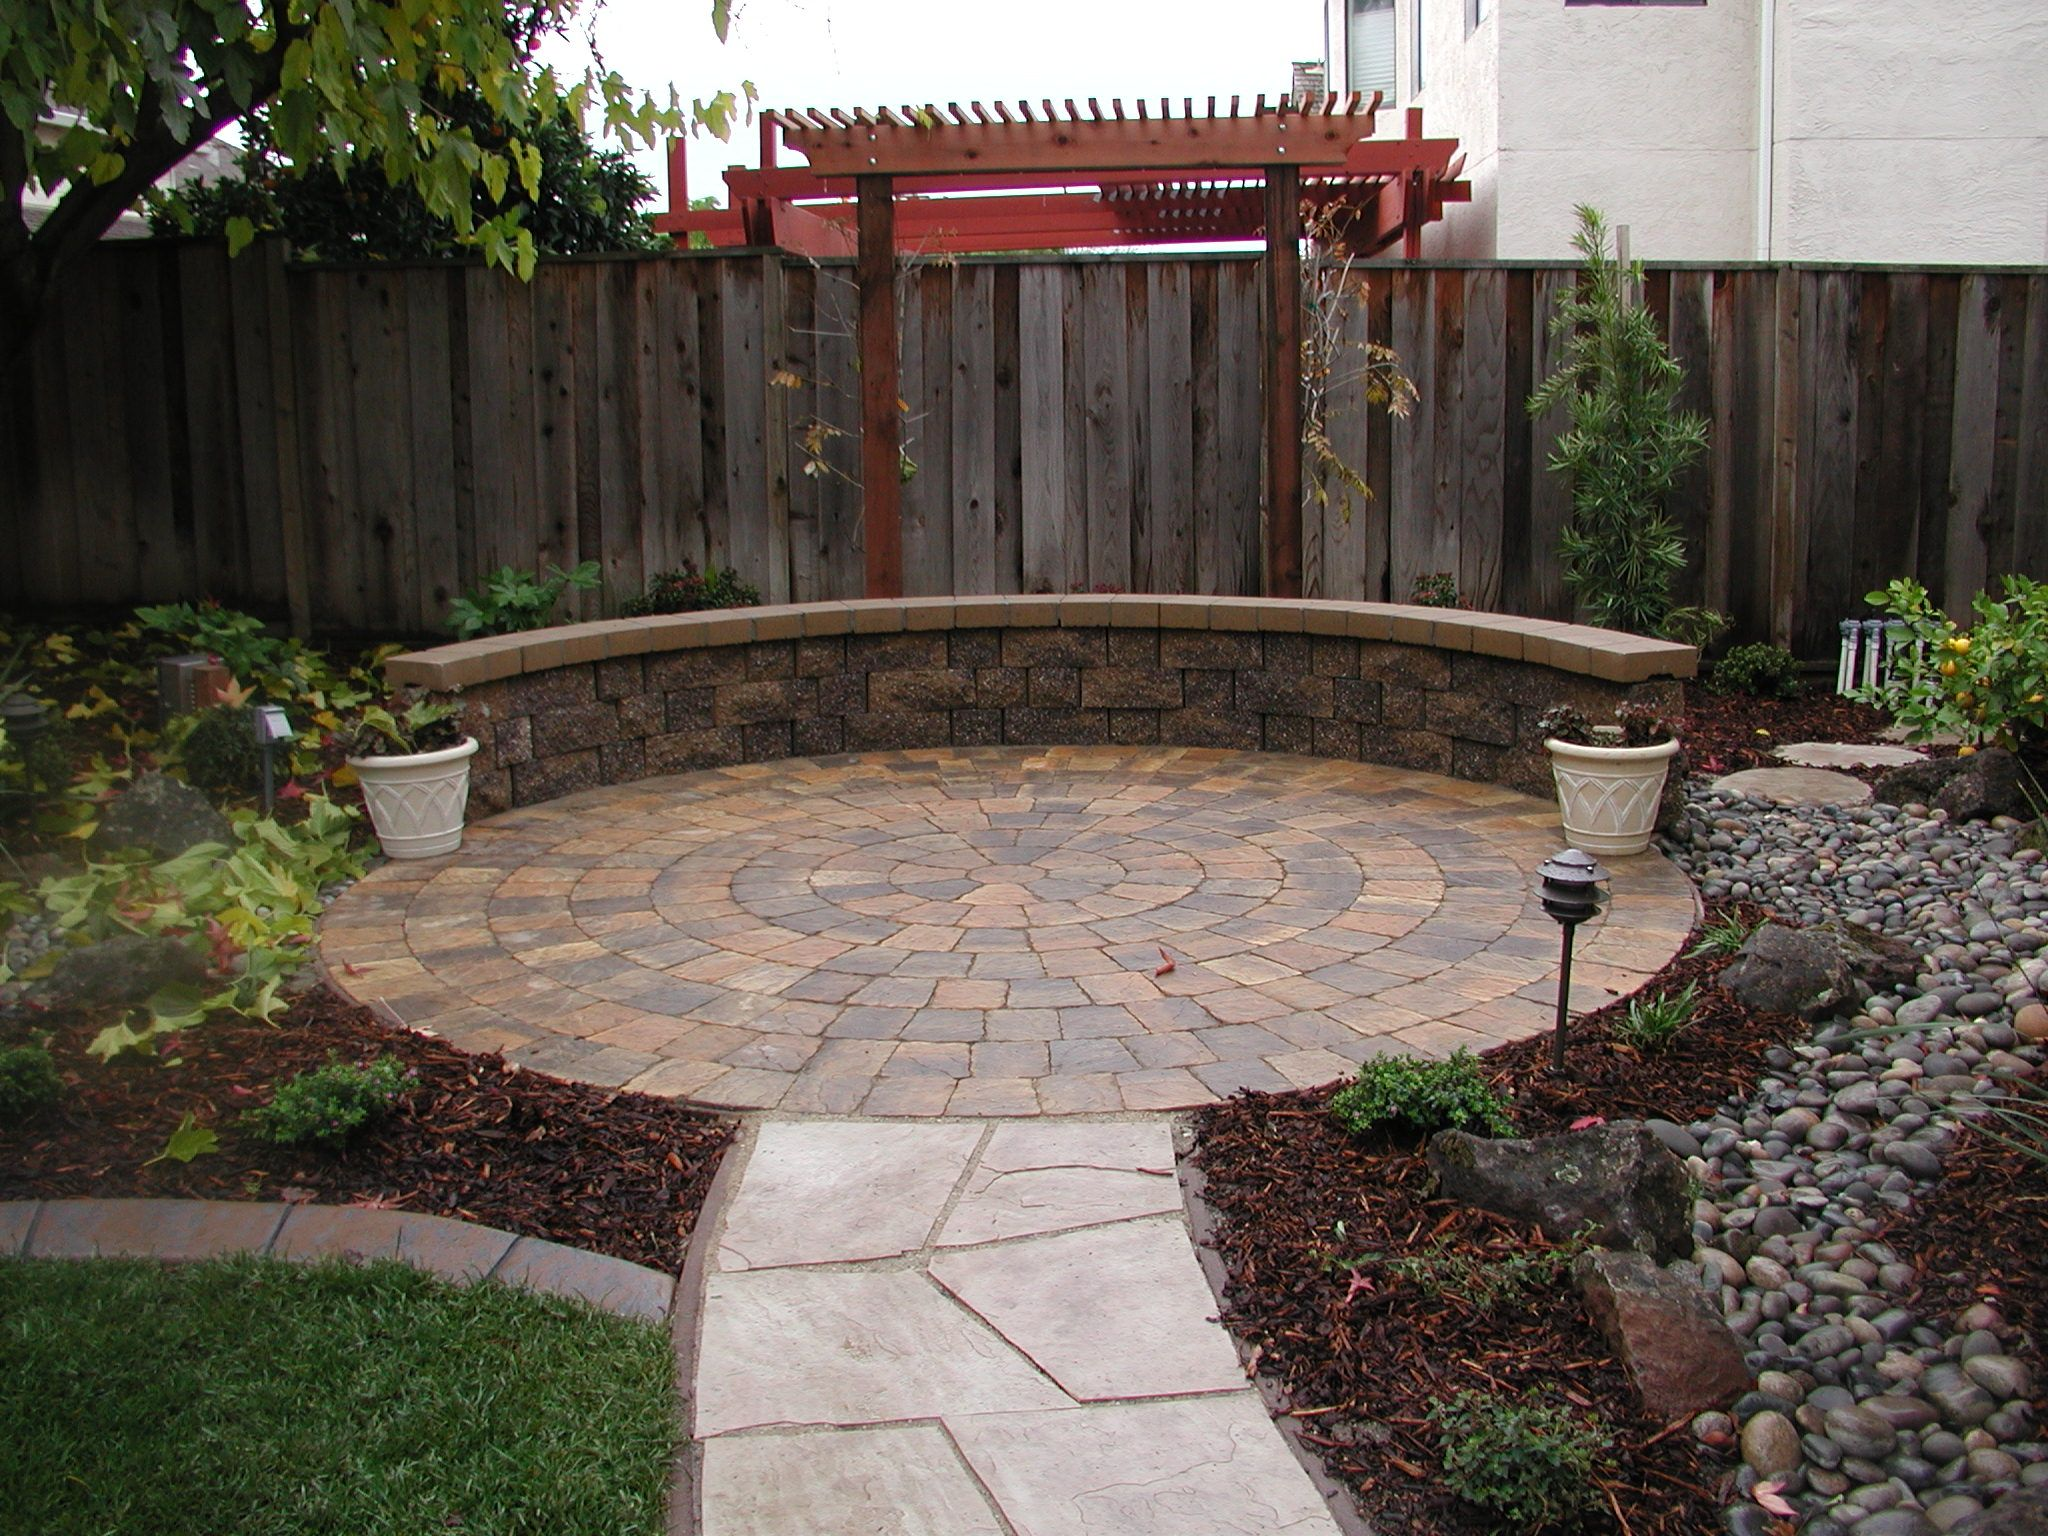 House garden landscape  We offer curb appeal landscaping providing new design and